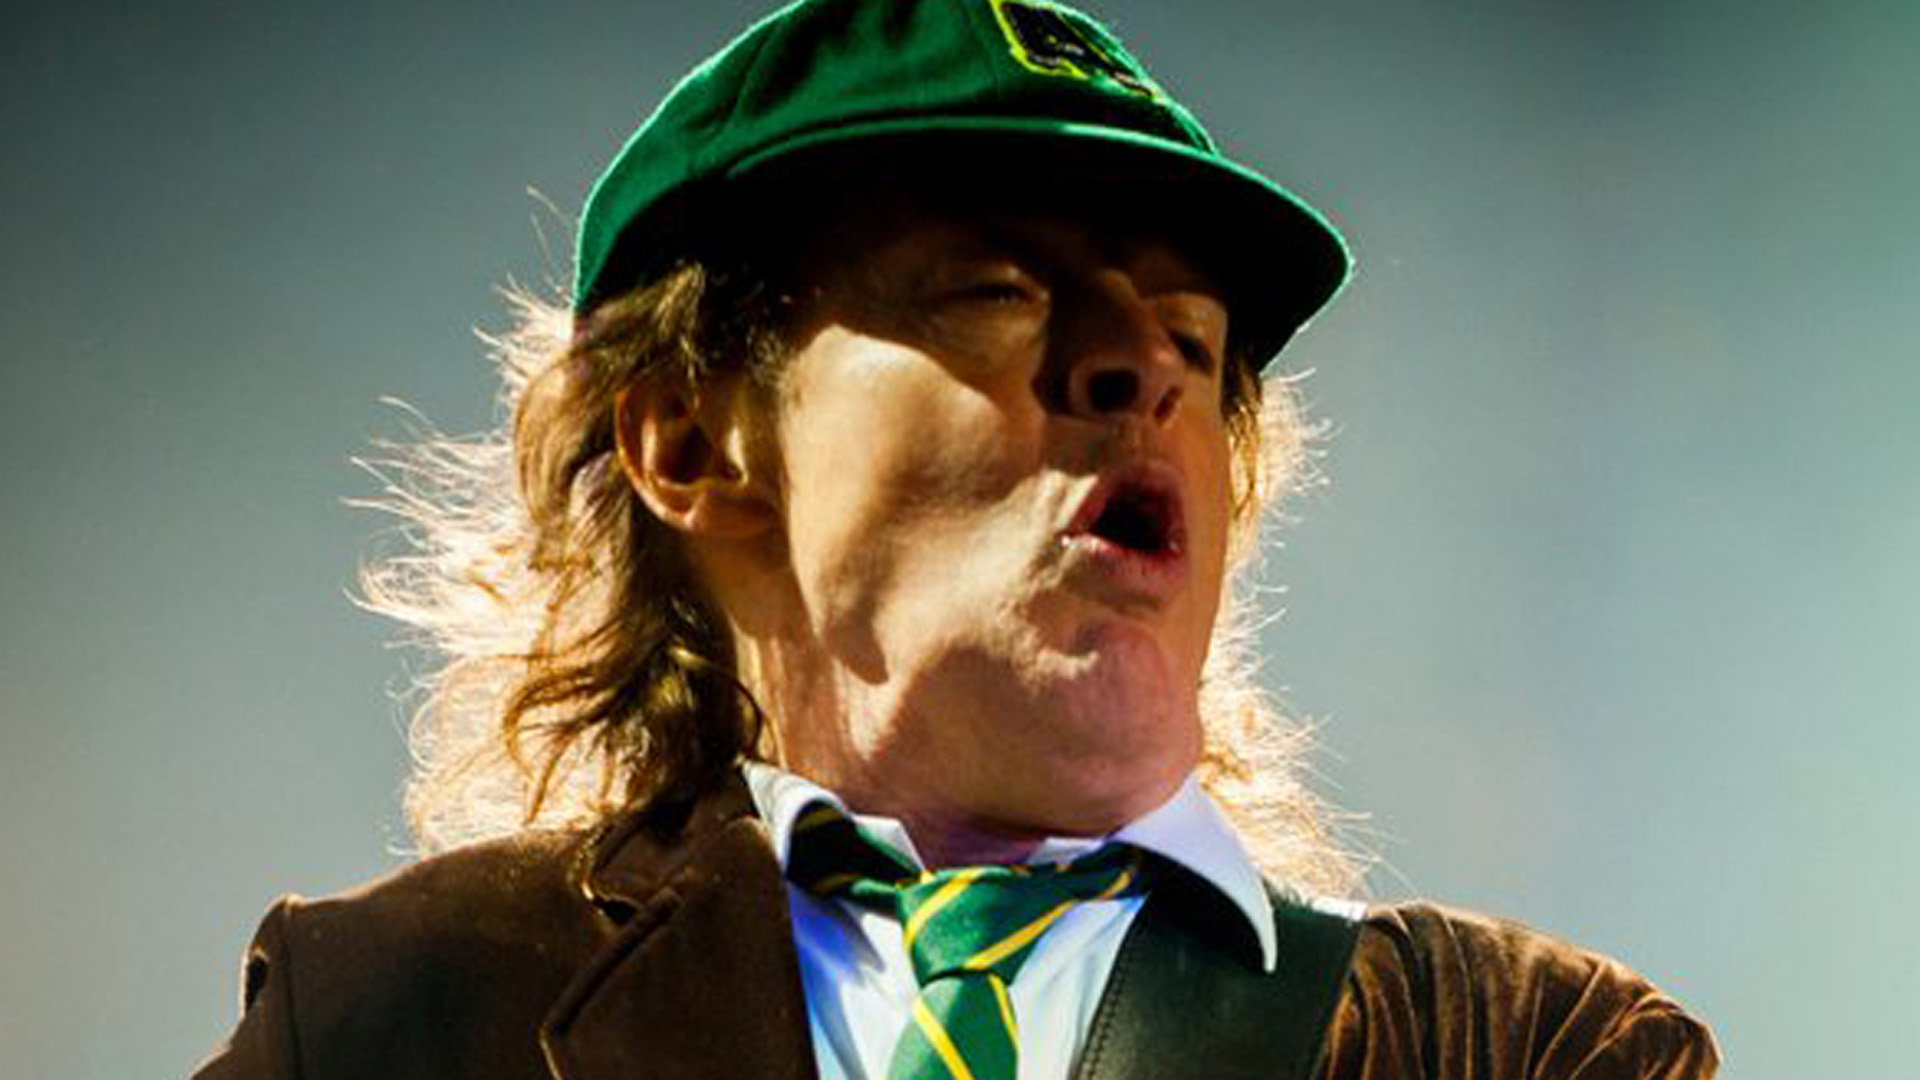 The Tragic Real Life Story Of AC/DC